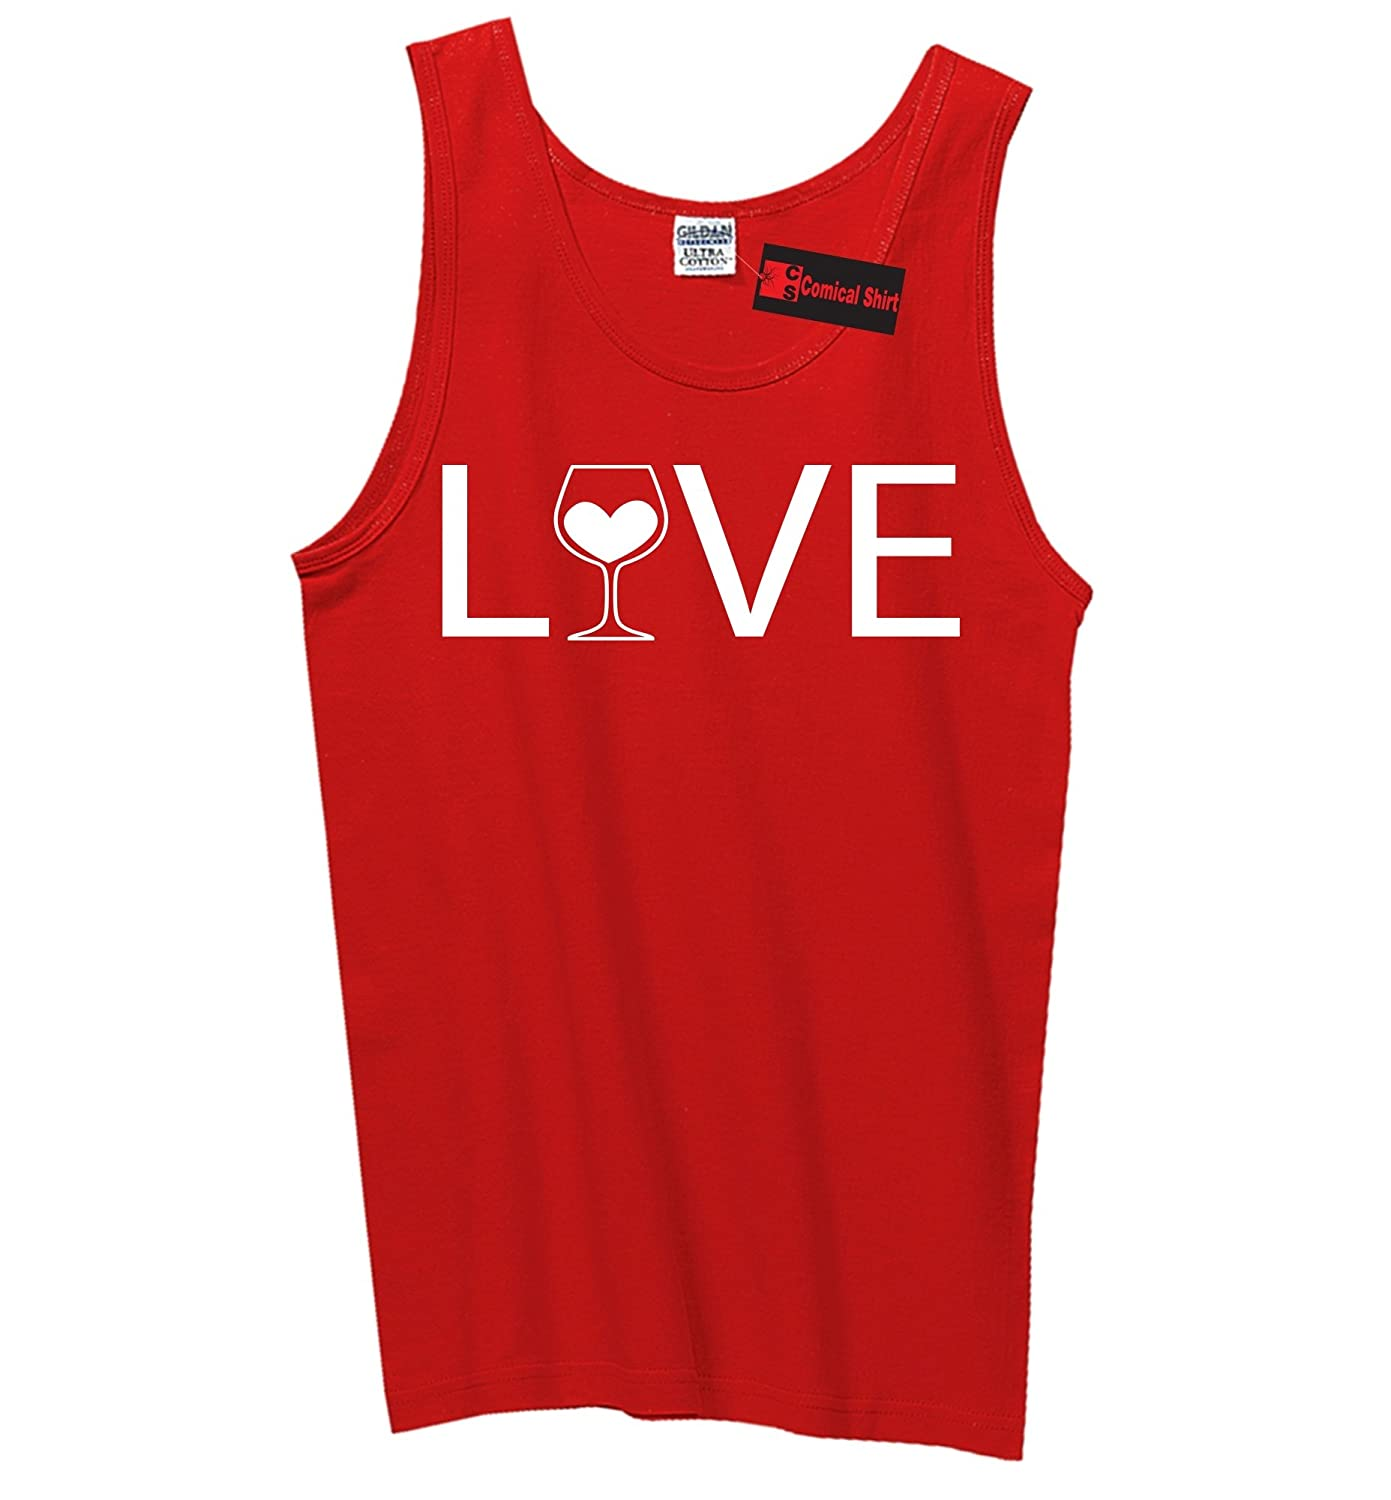 Comical Shirt Mens Love Wine Tank Top